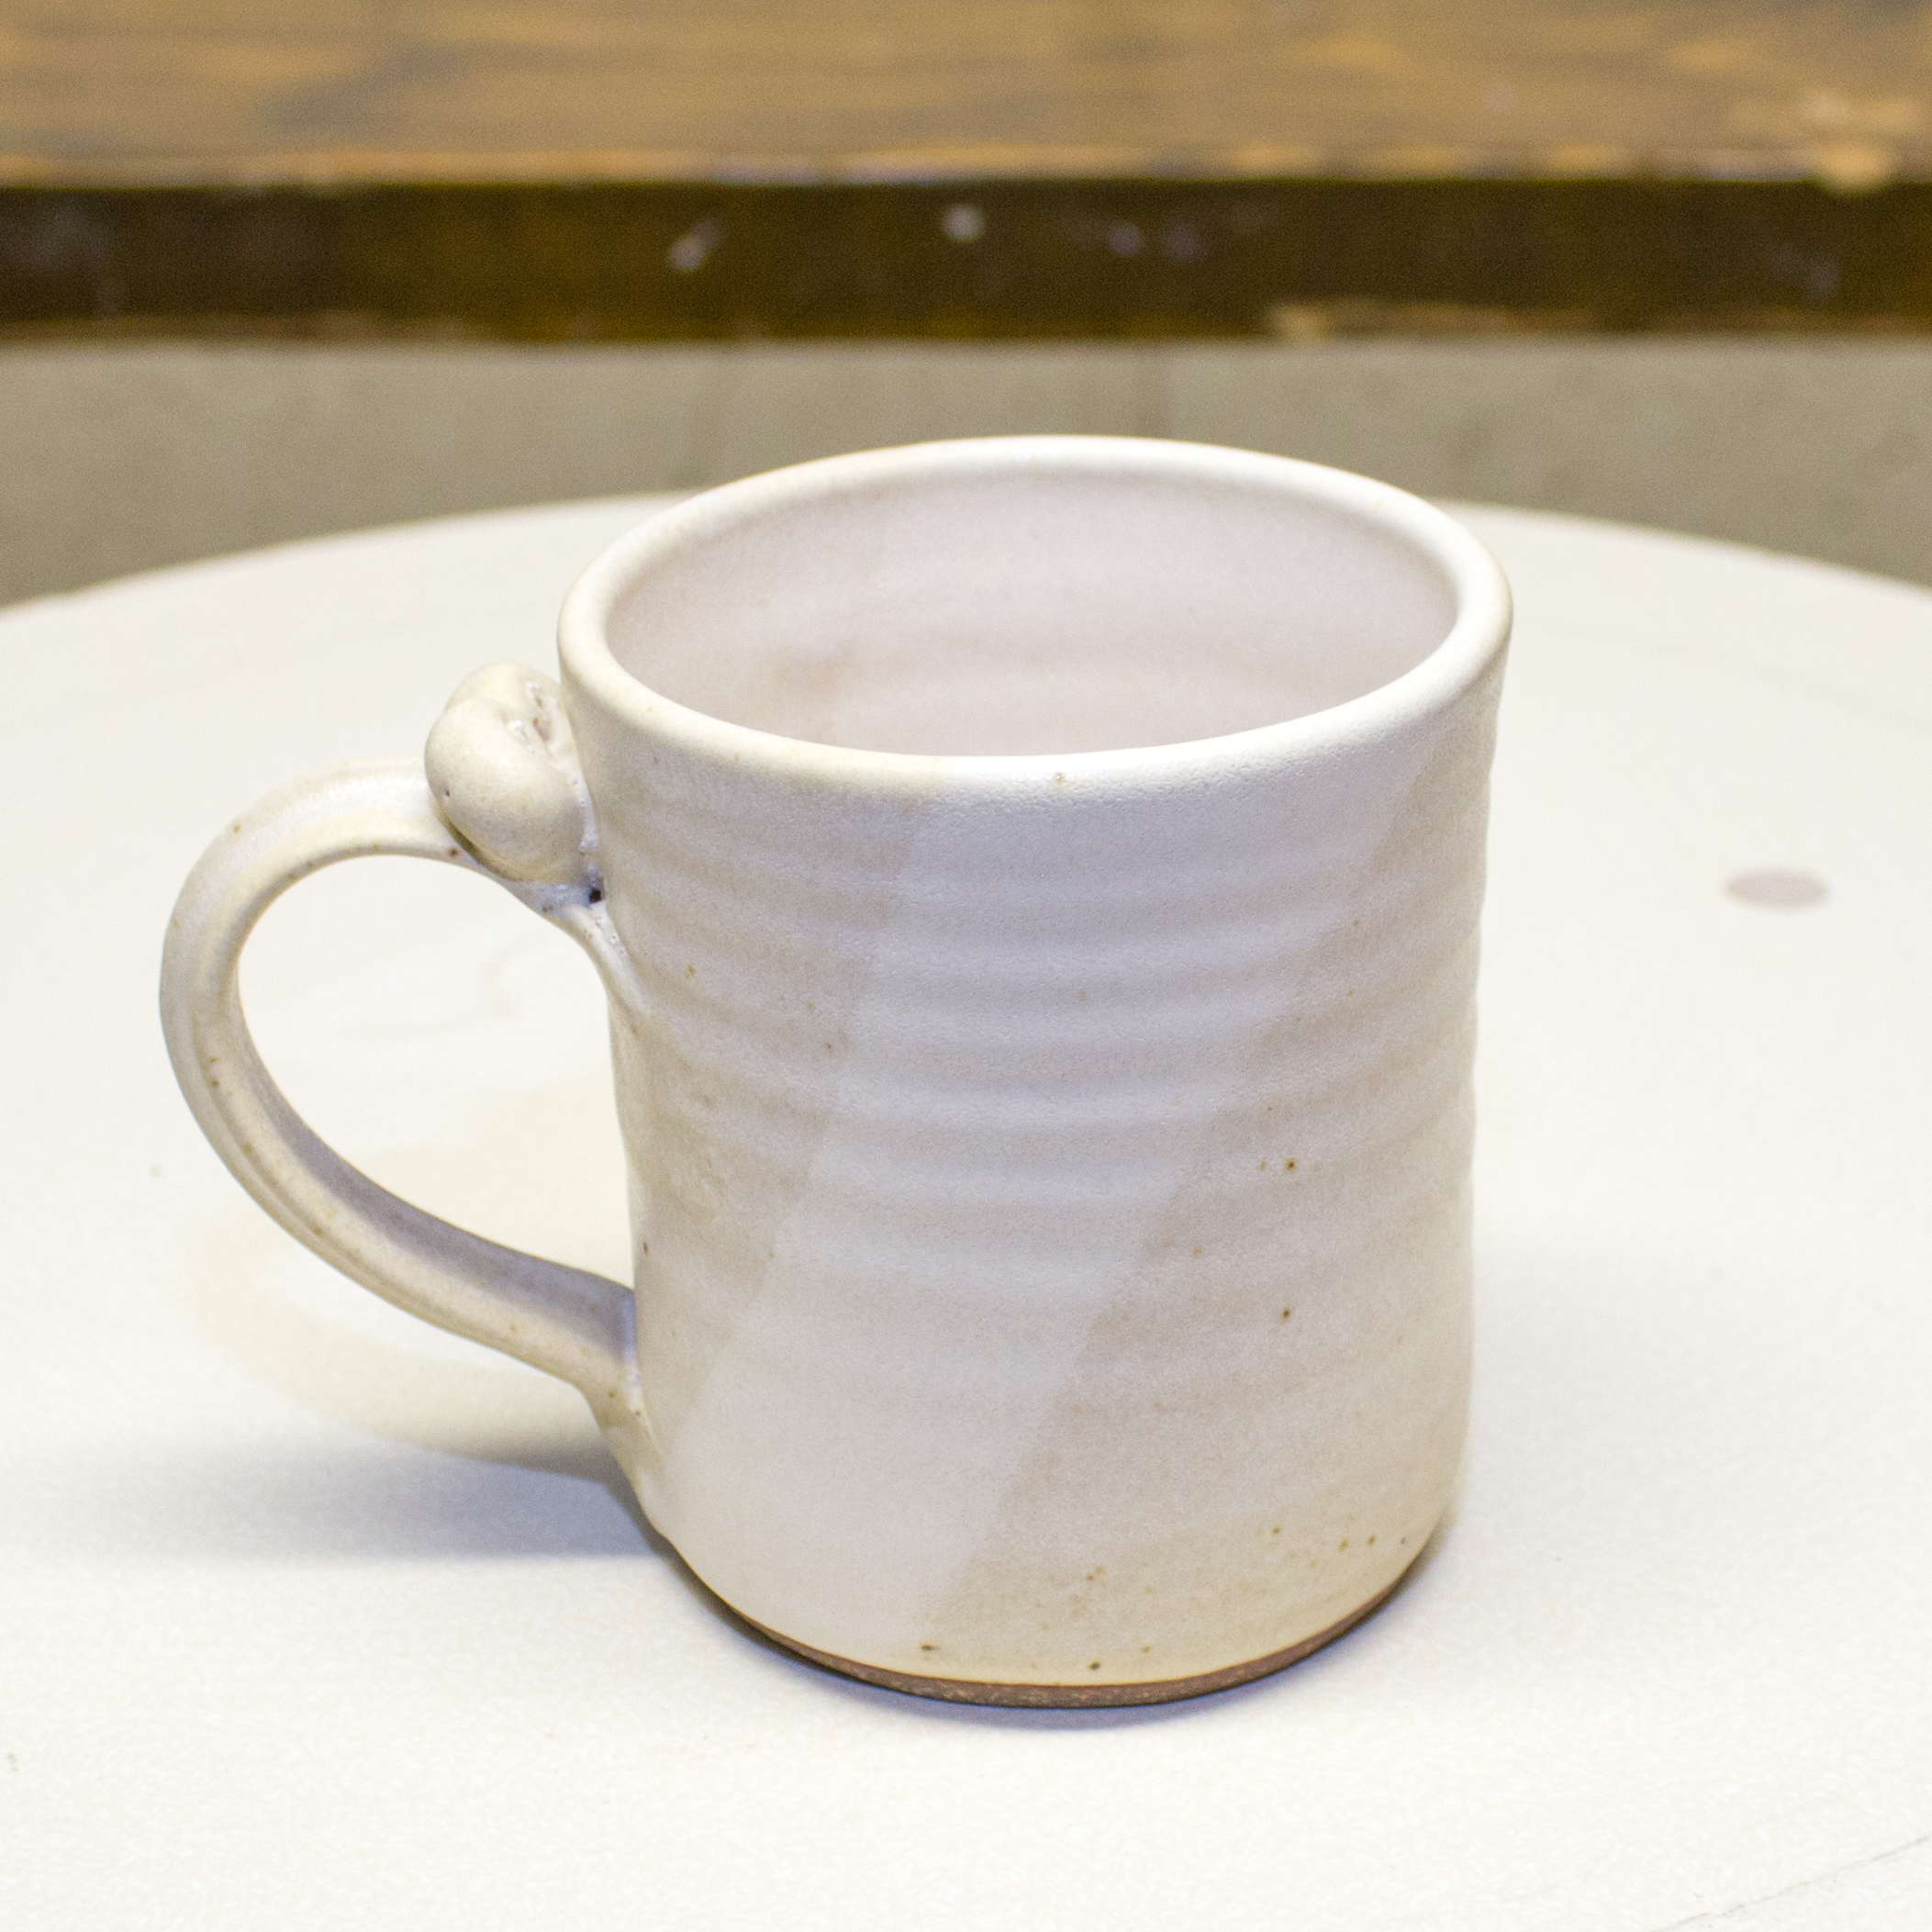 Mug- Orphan Pearl White 4x3 in ($9)